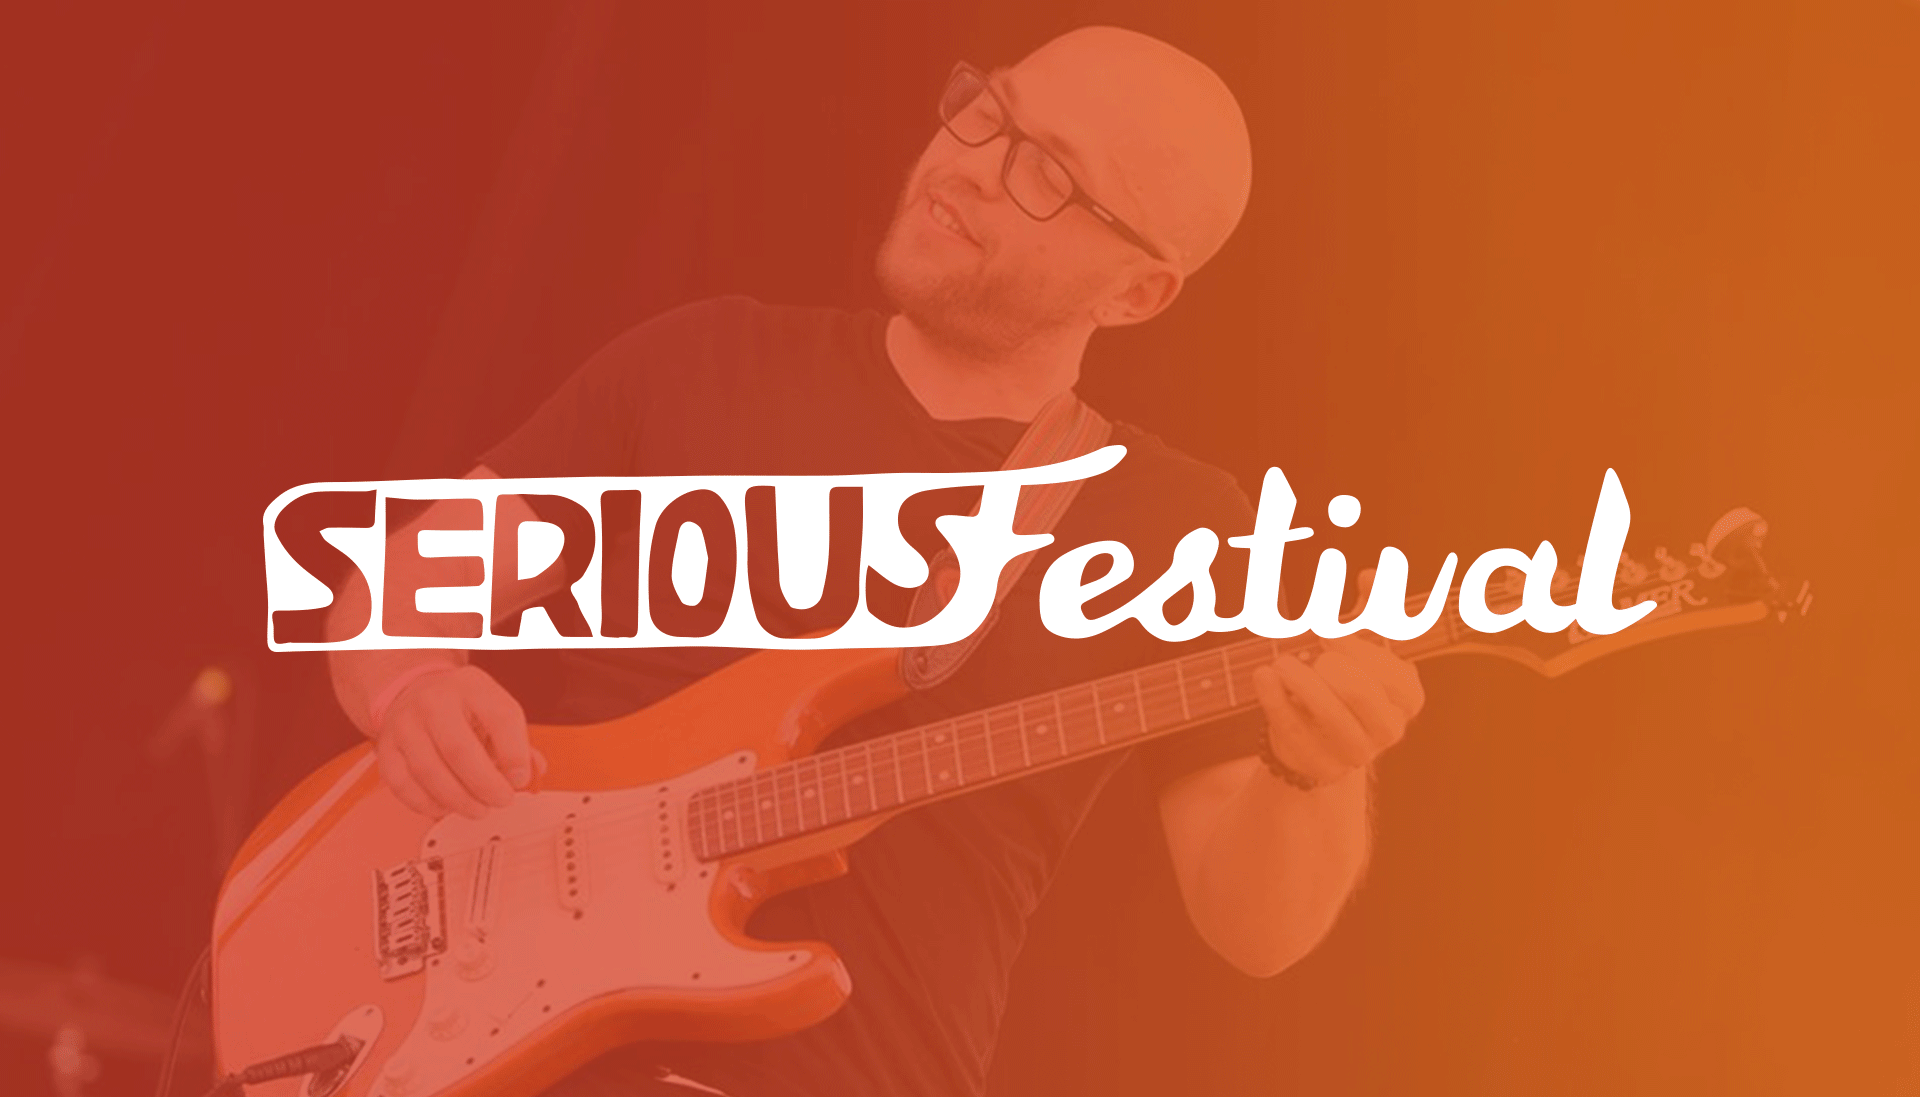 Serious Festival logo overlaying man playing an electric guitar